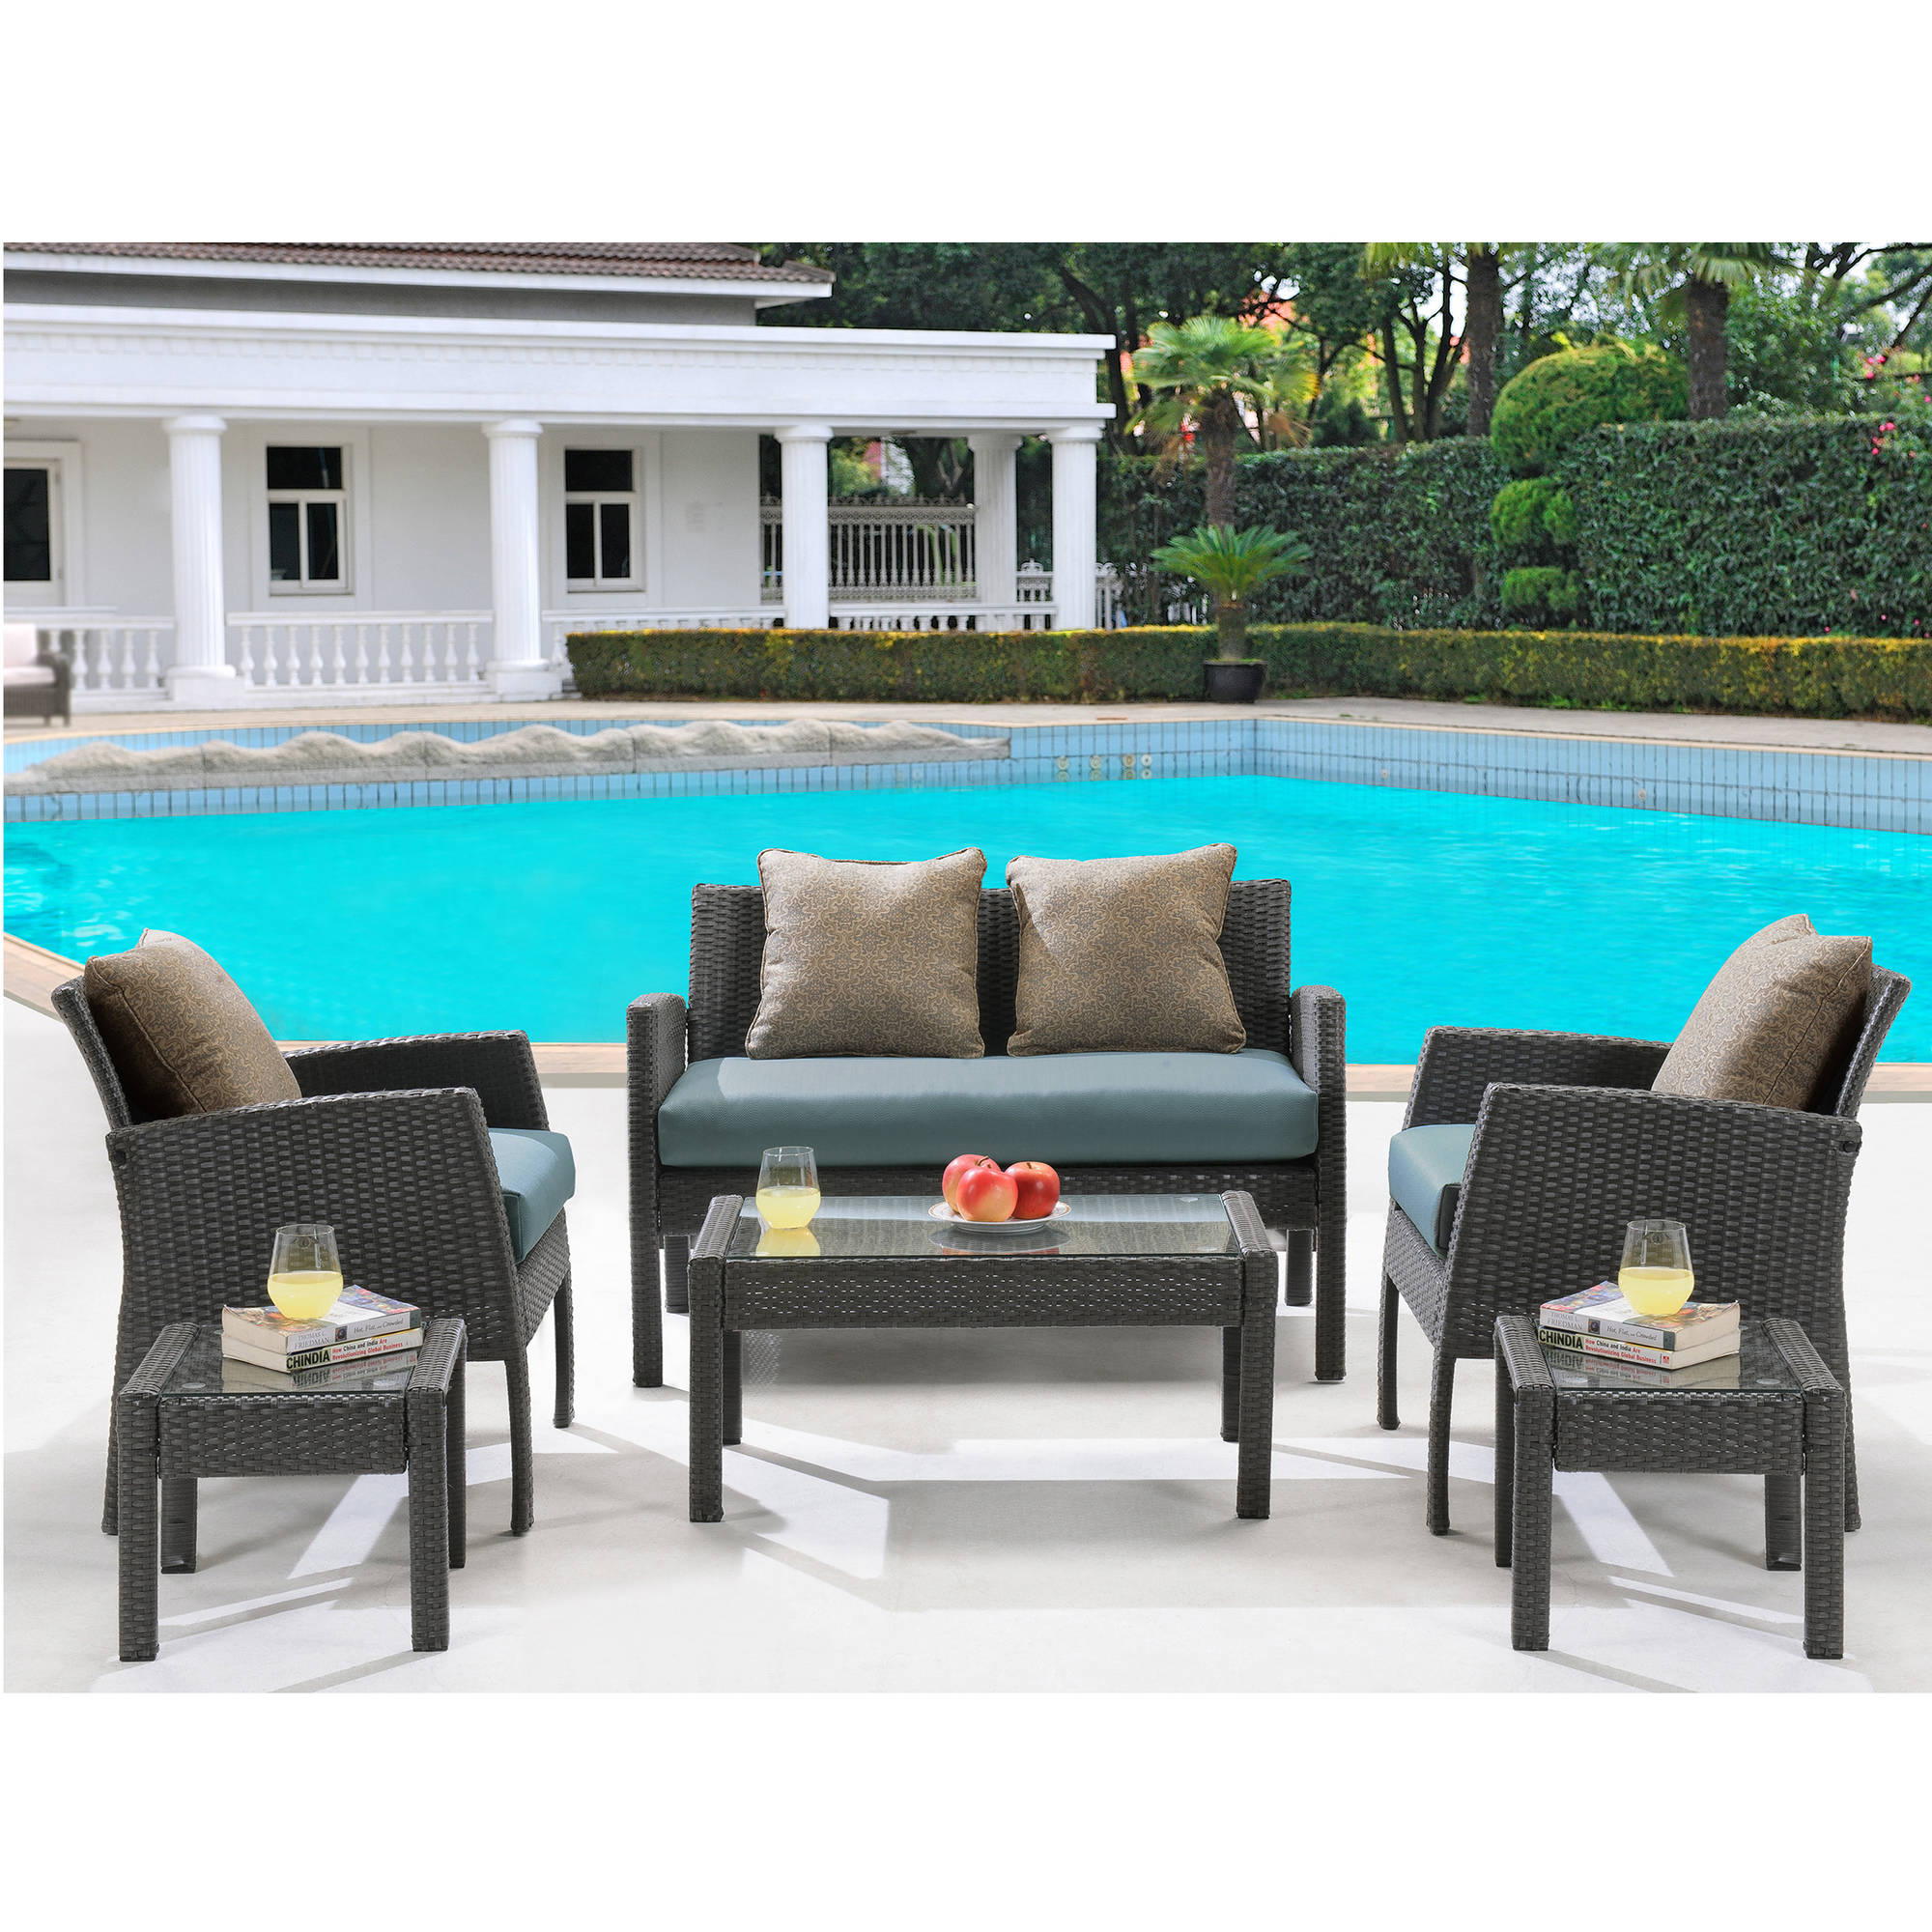 Hanover Outdoor Chelsea 6-Piece Space-Saving Patio Set